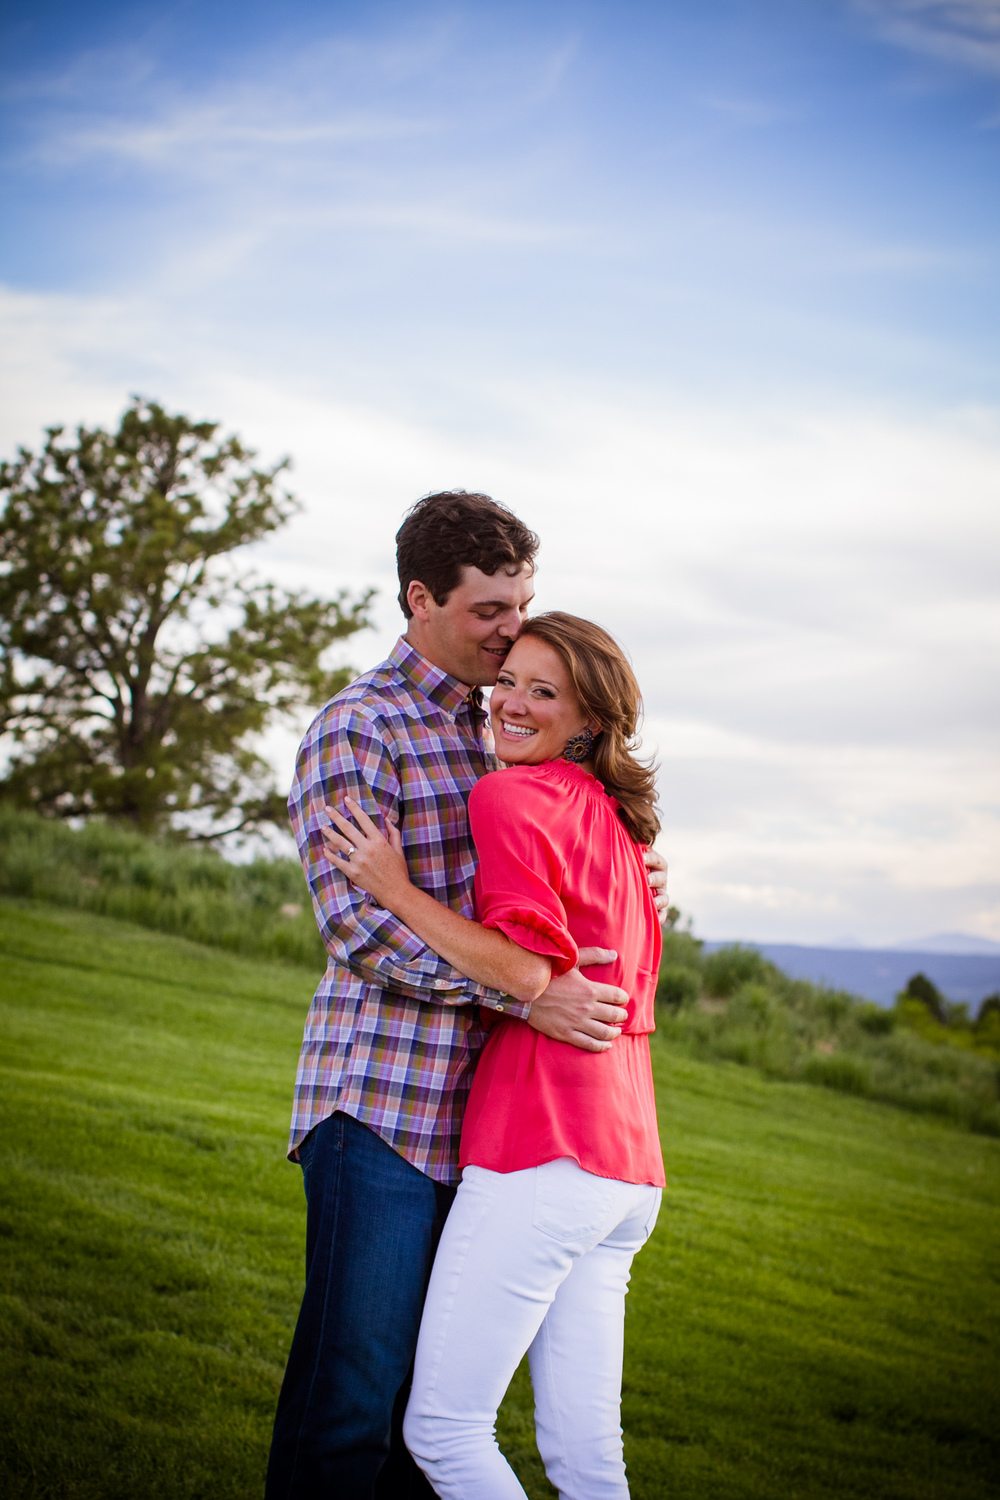 Castle_Pines_Colorado'_Engagement_Photos_012.JPG